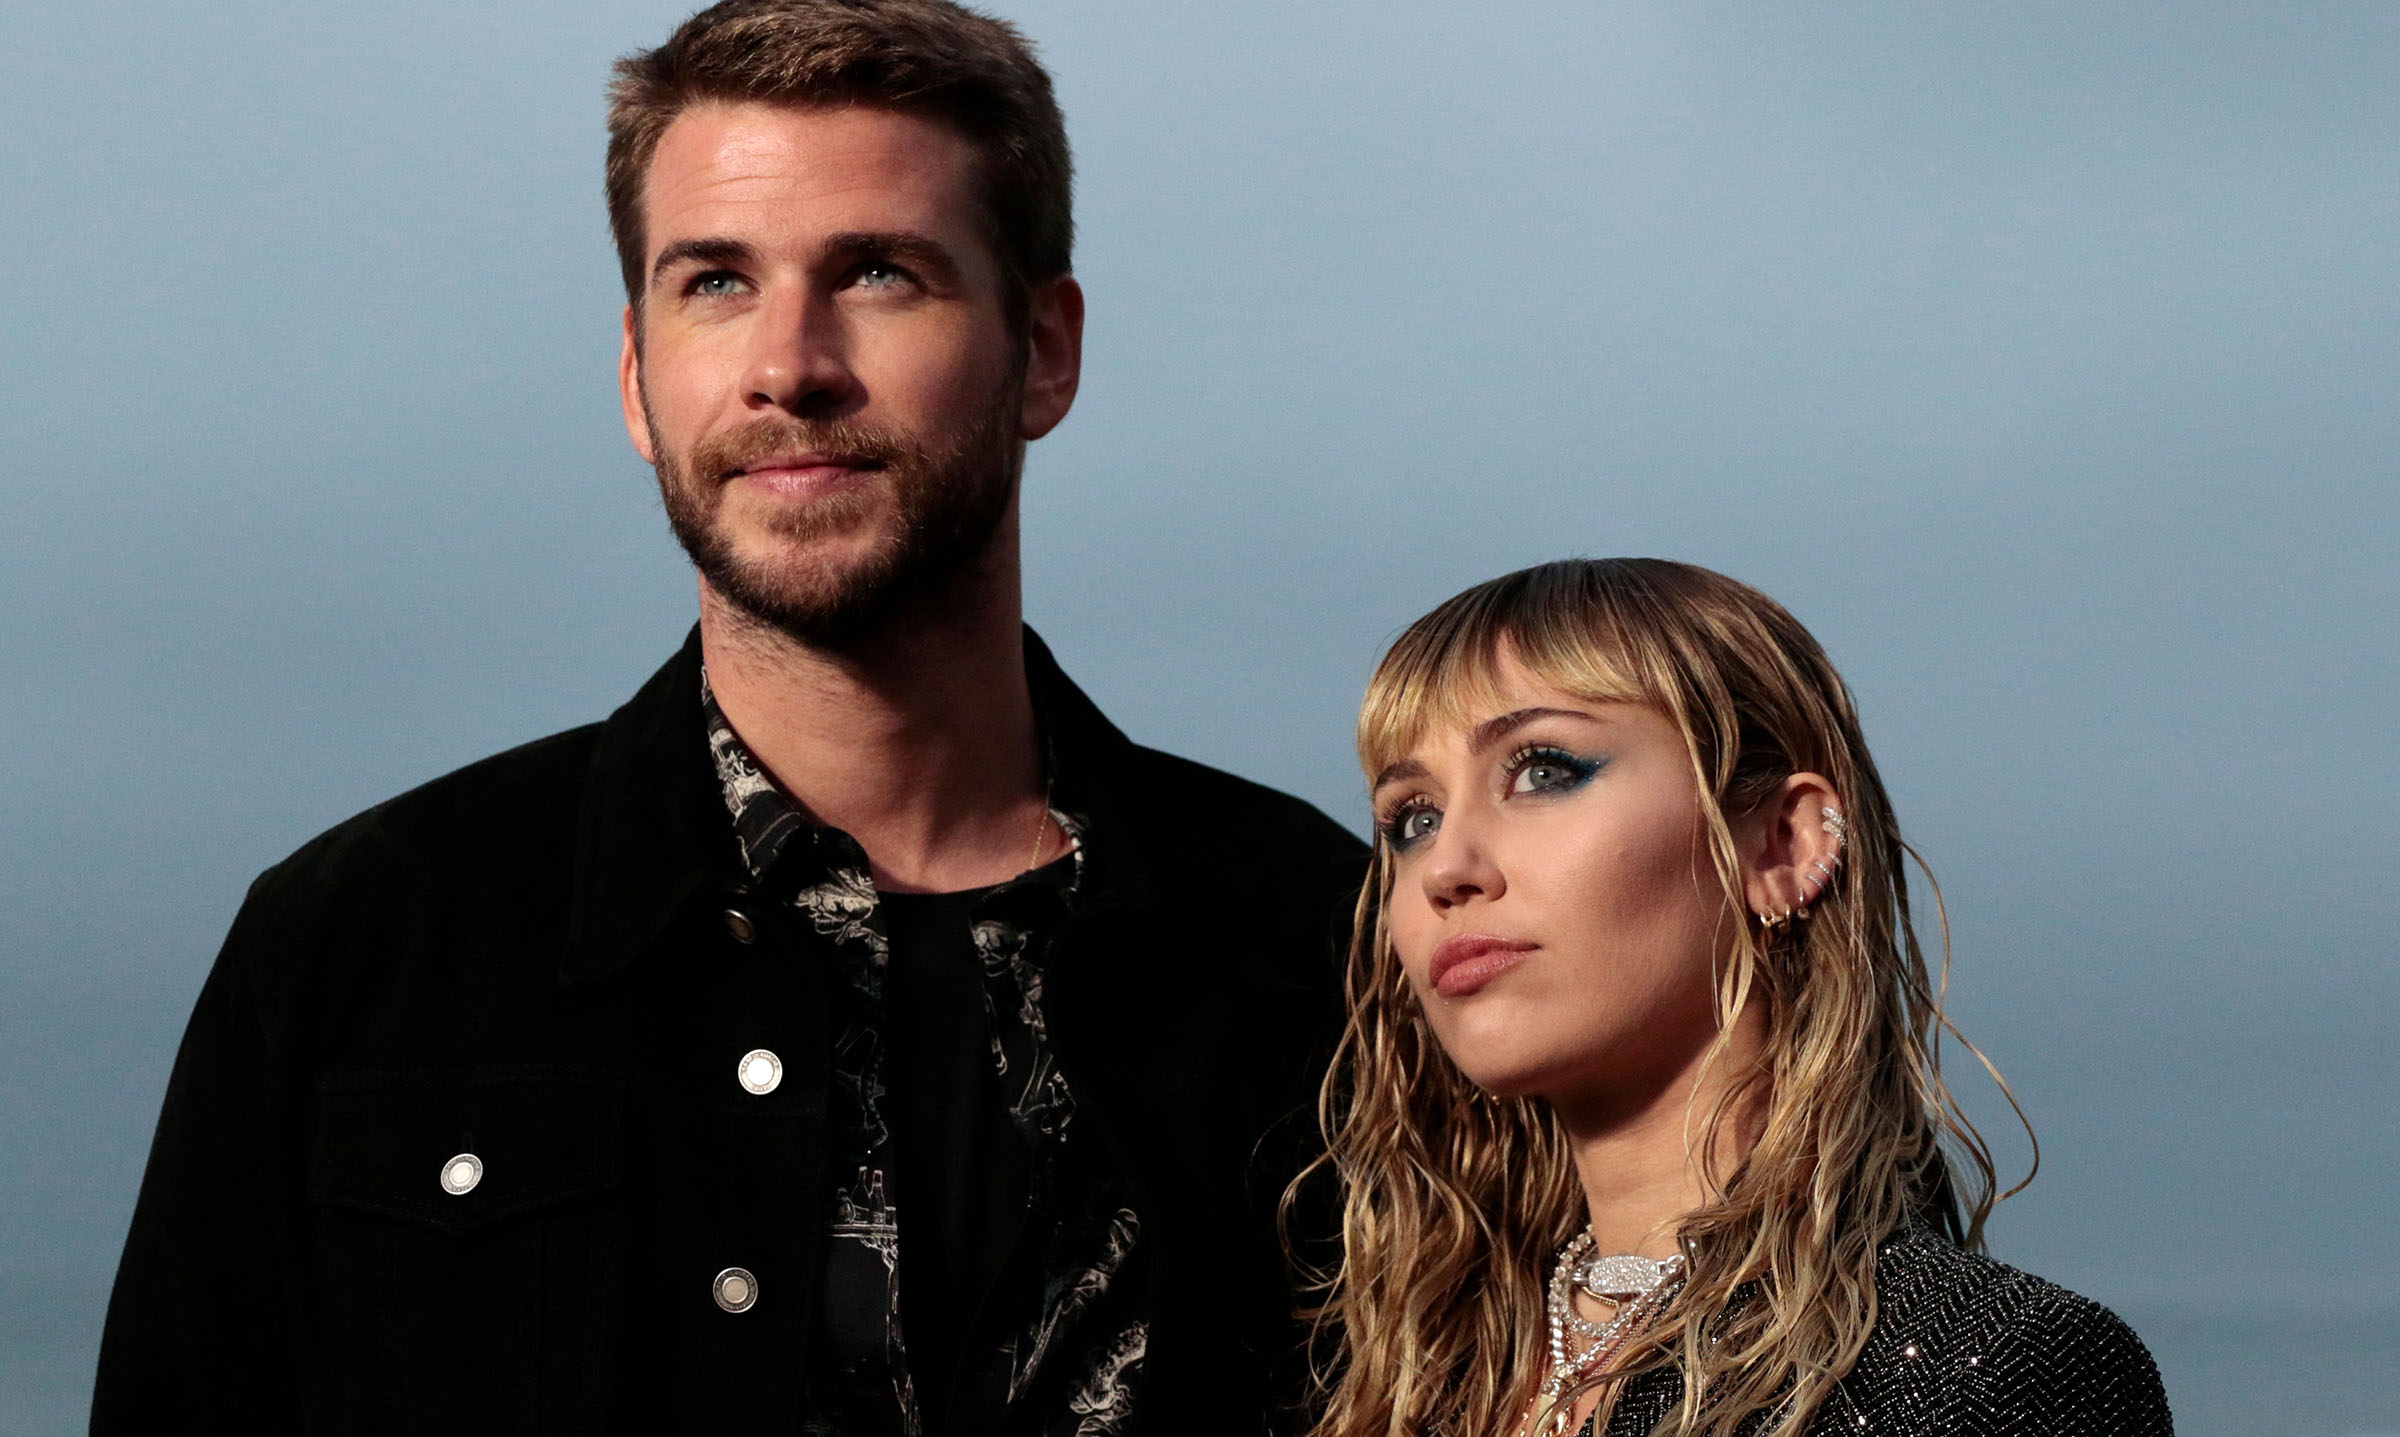 Miley Cyrus' Split From Liam Hemsworth is a Lesson About Outgrowing Love